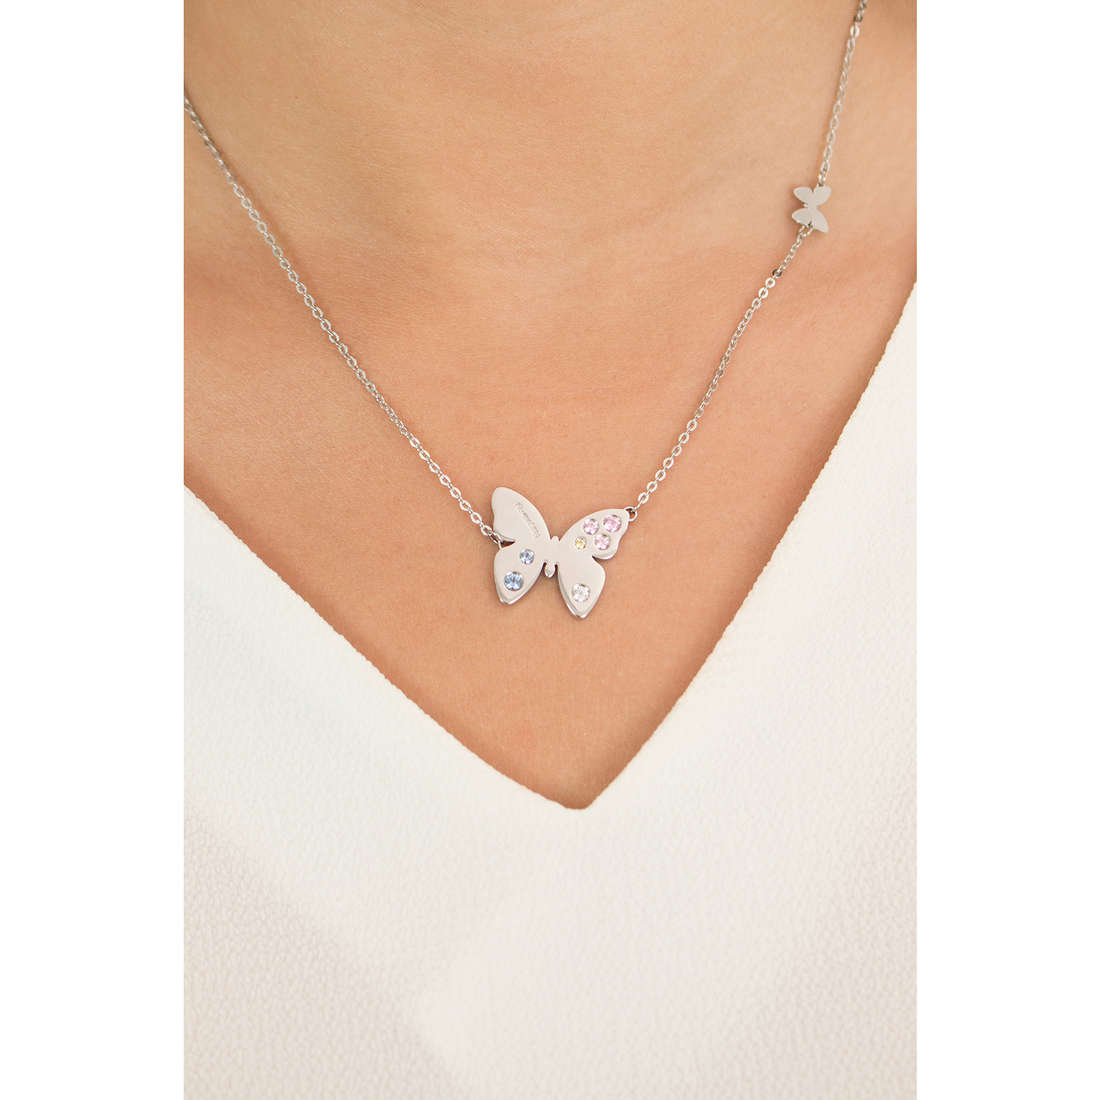 Nomination necklaces Butterfly woman 021320/005 photo wearing